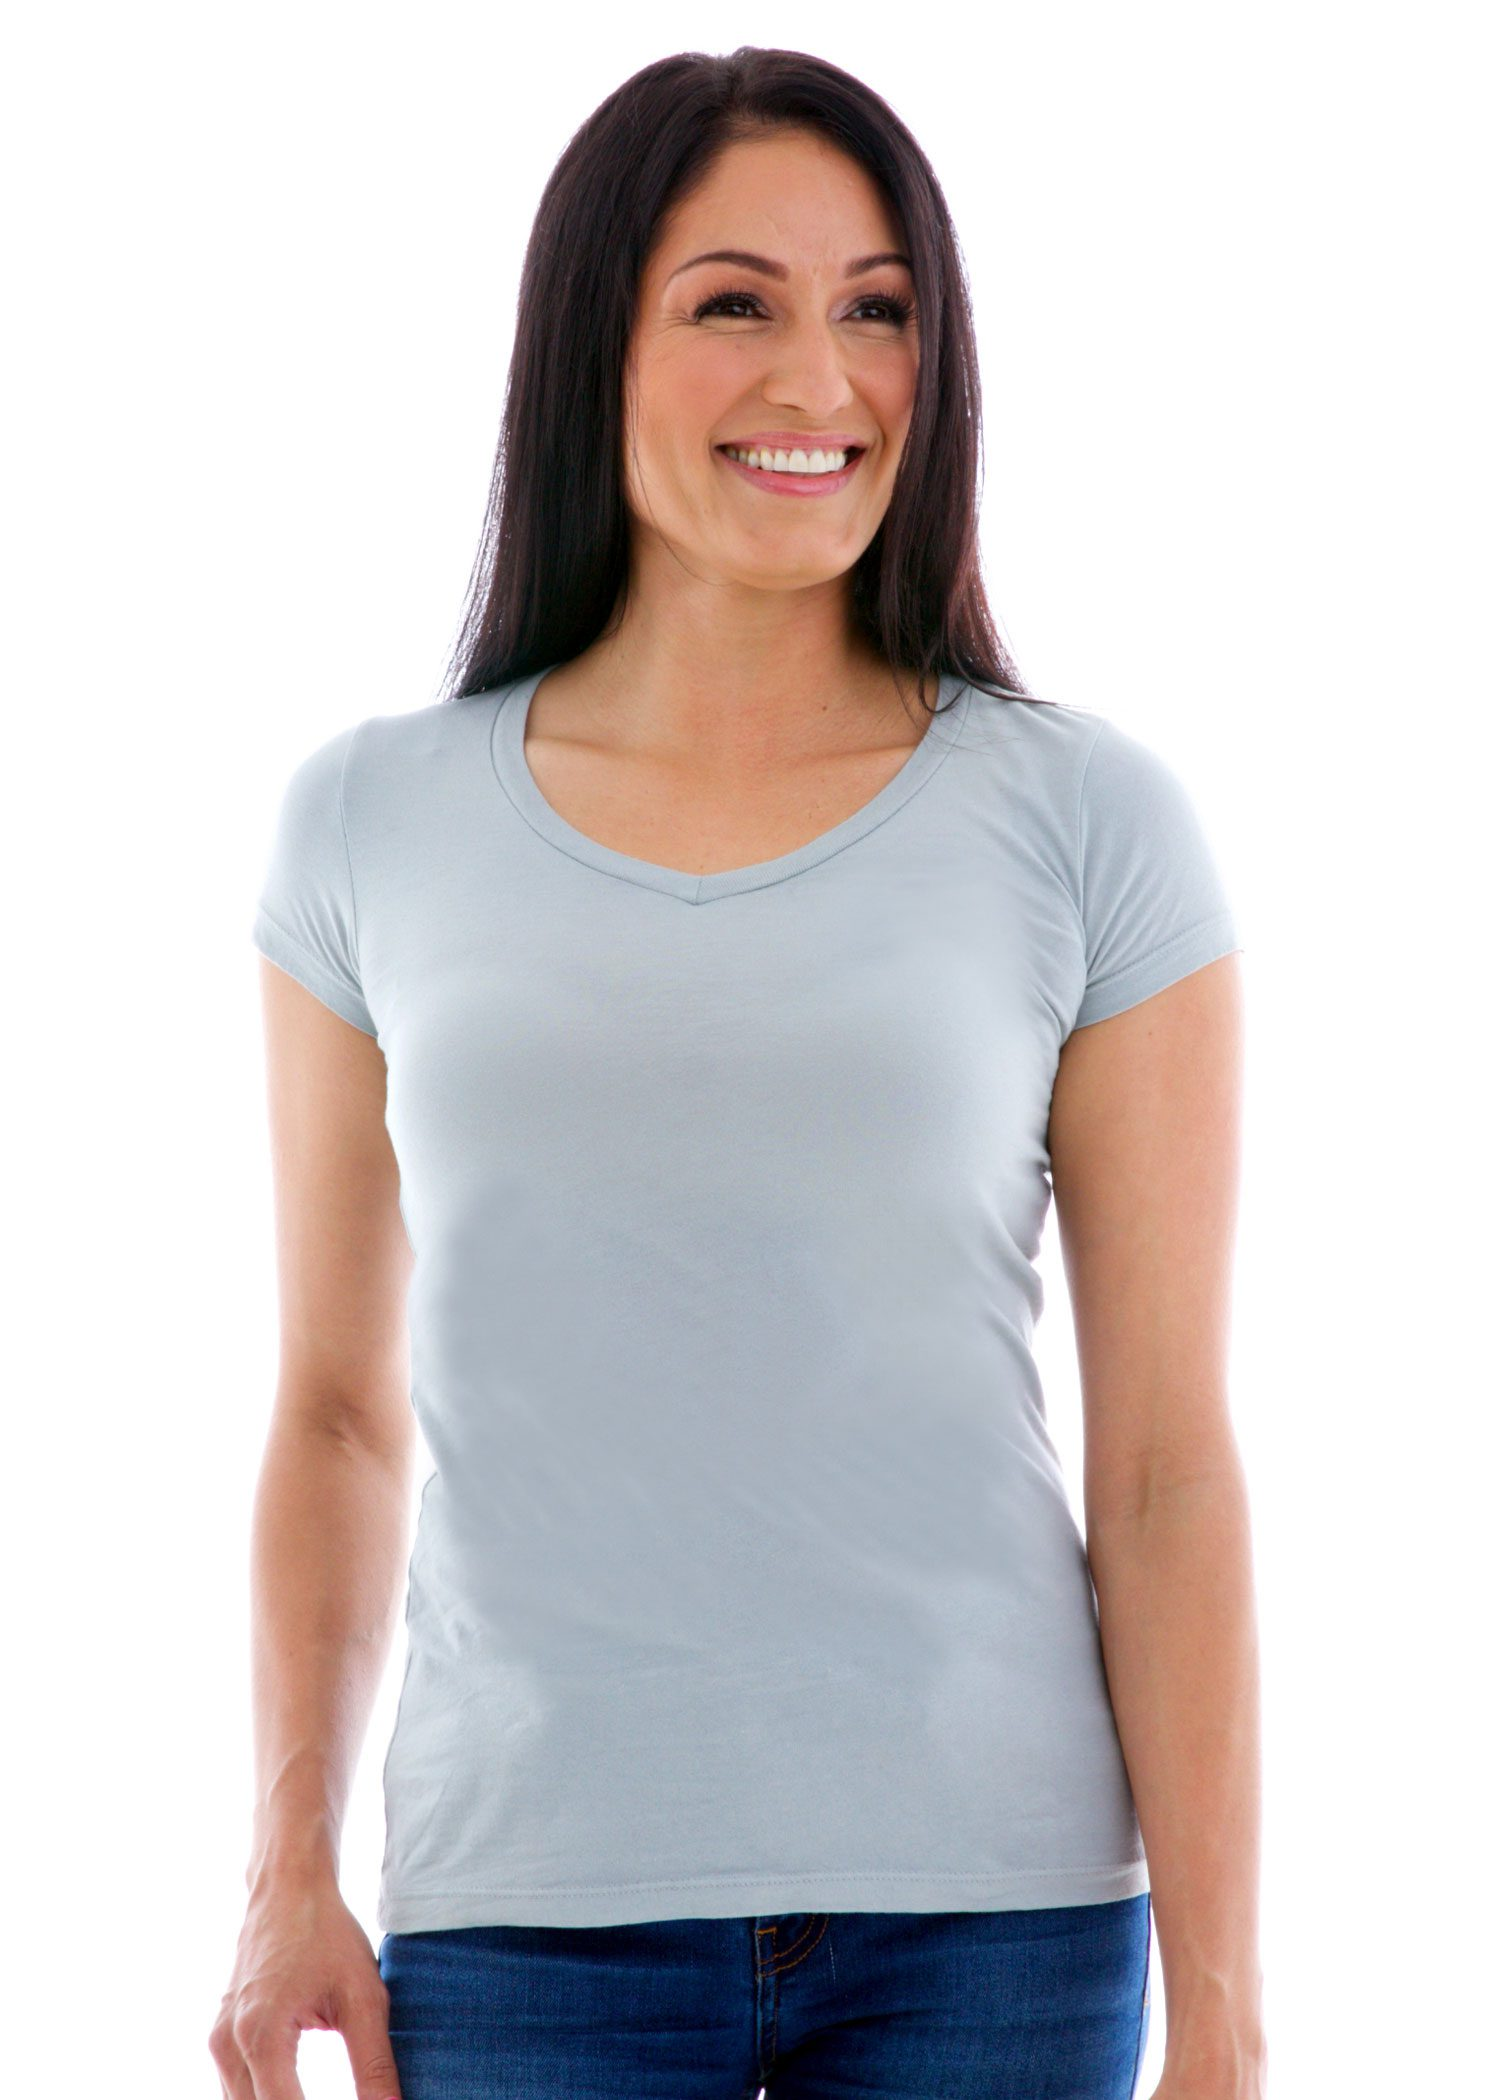 Women's Premium Shallow V-neck Short Sleeve T-Shirt